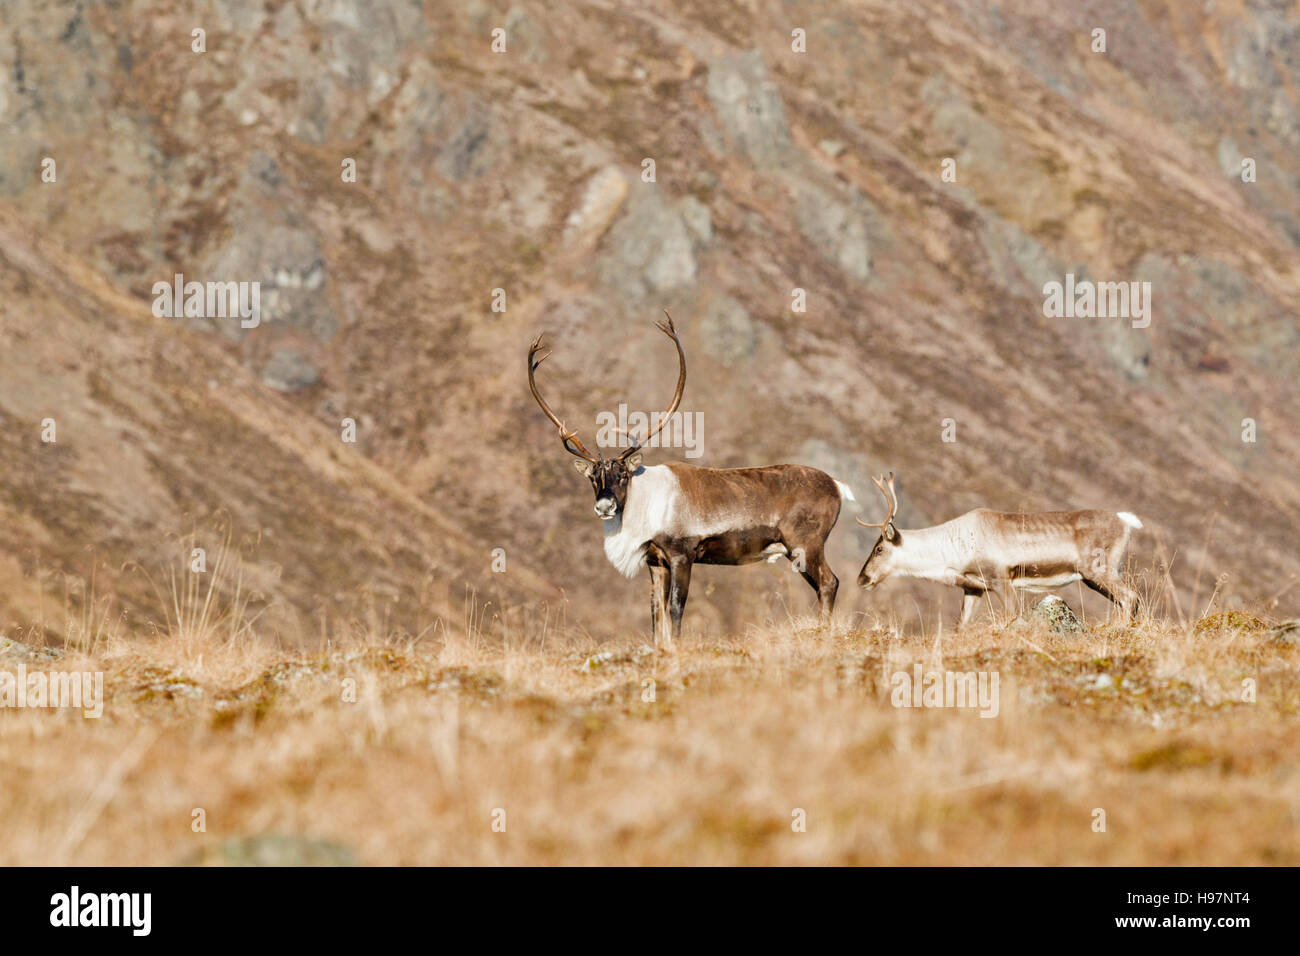 A bull and cow caribou in the Alaskan Range mountains during the autumn rut. Stock Photo